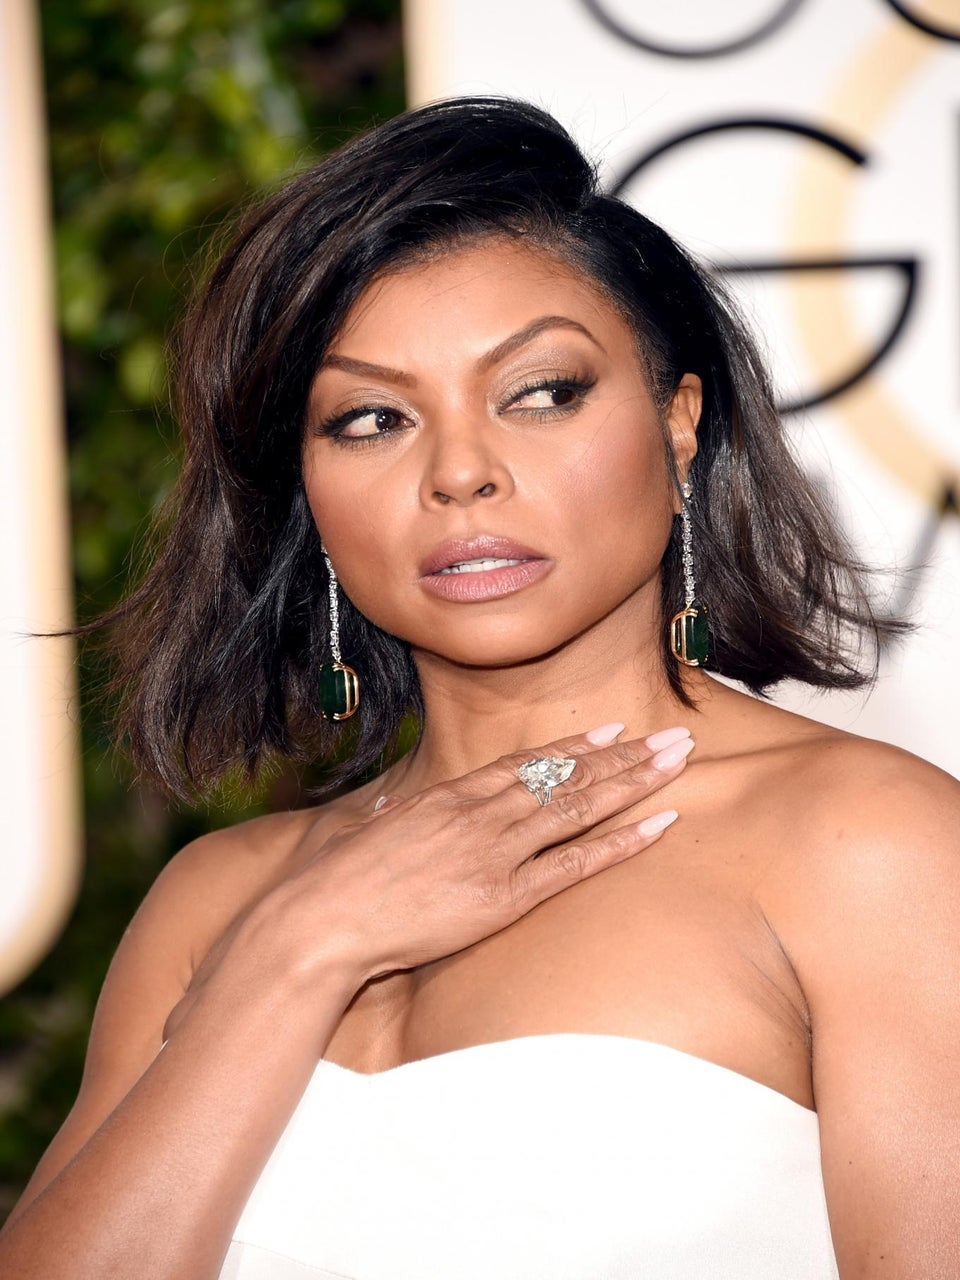 Taraji P. Henson, Nicki Minaj, Kendrick Lamar Named to 'Time 100' List